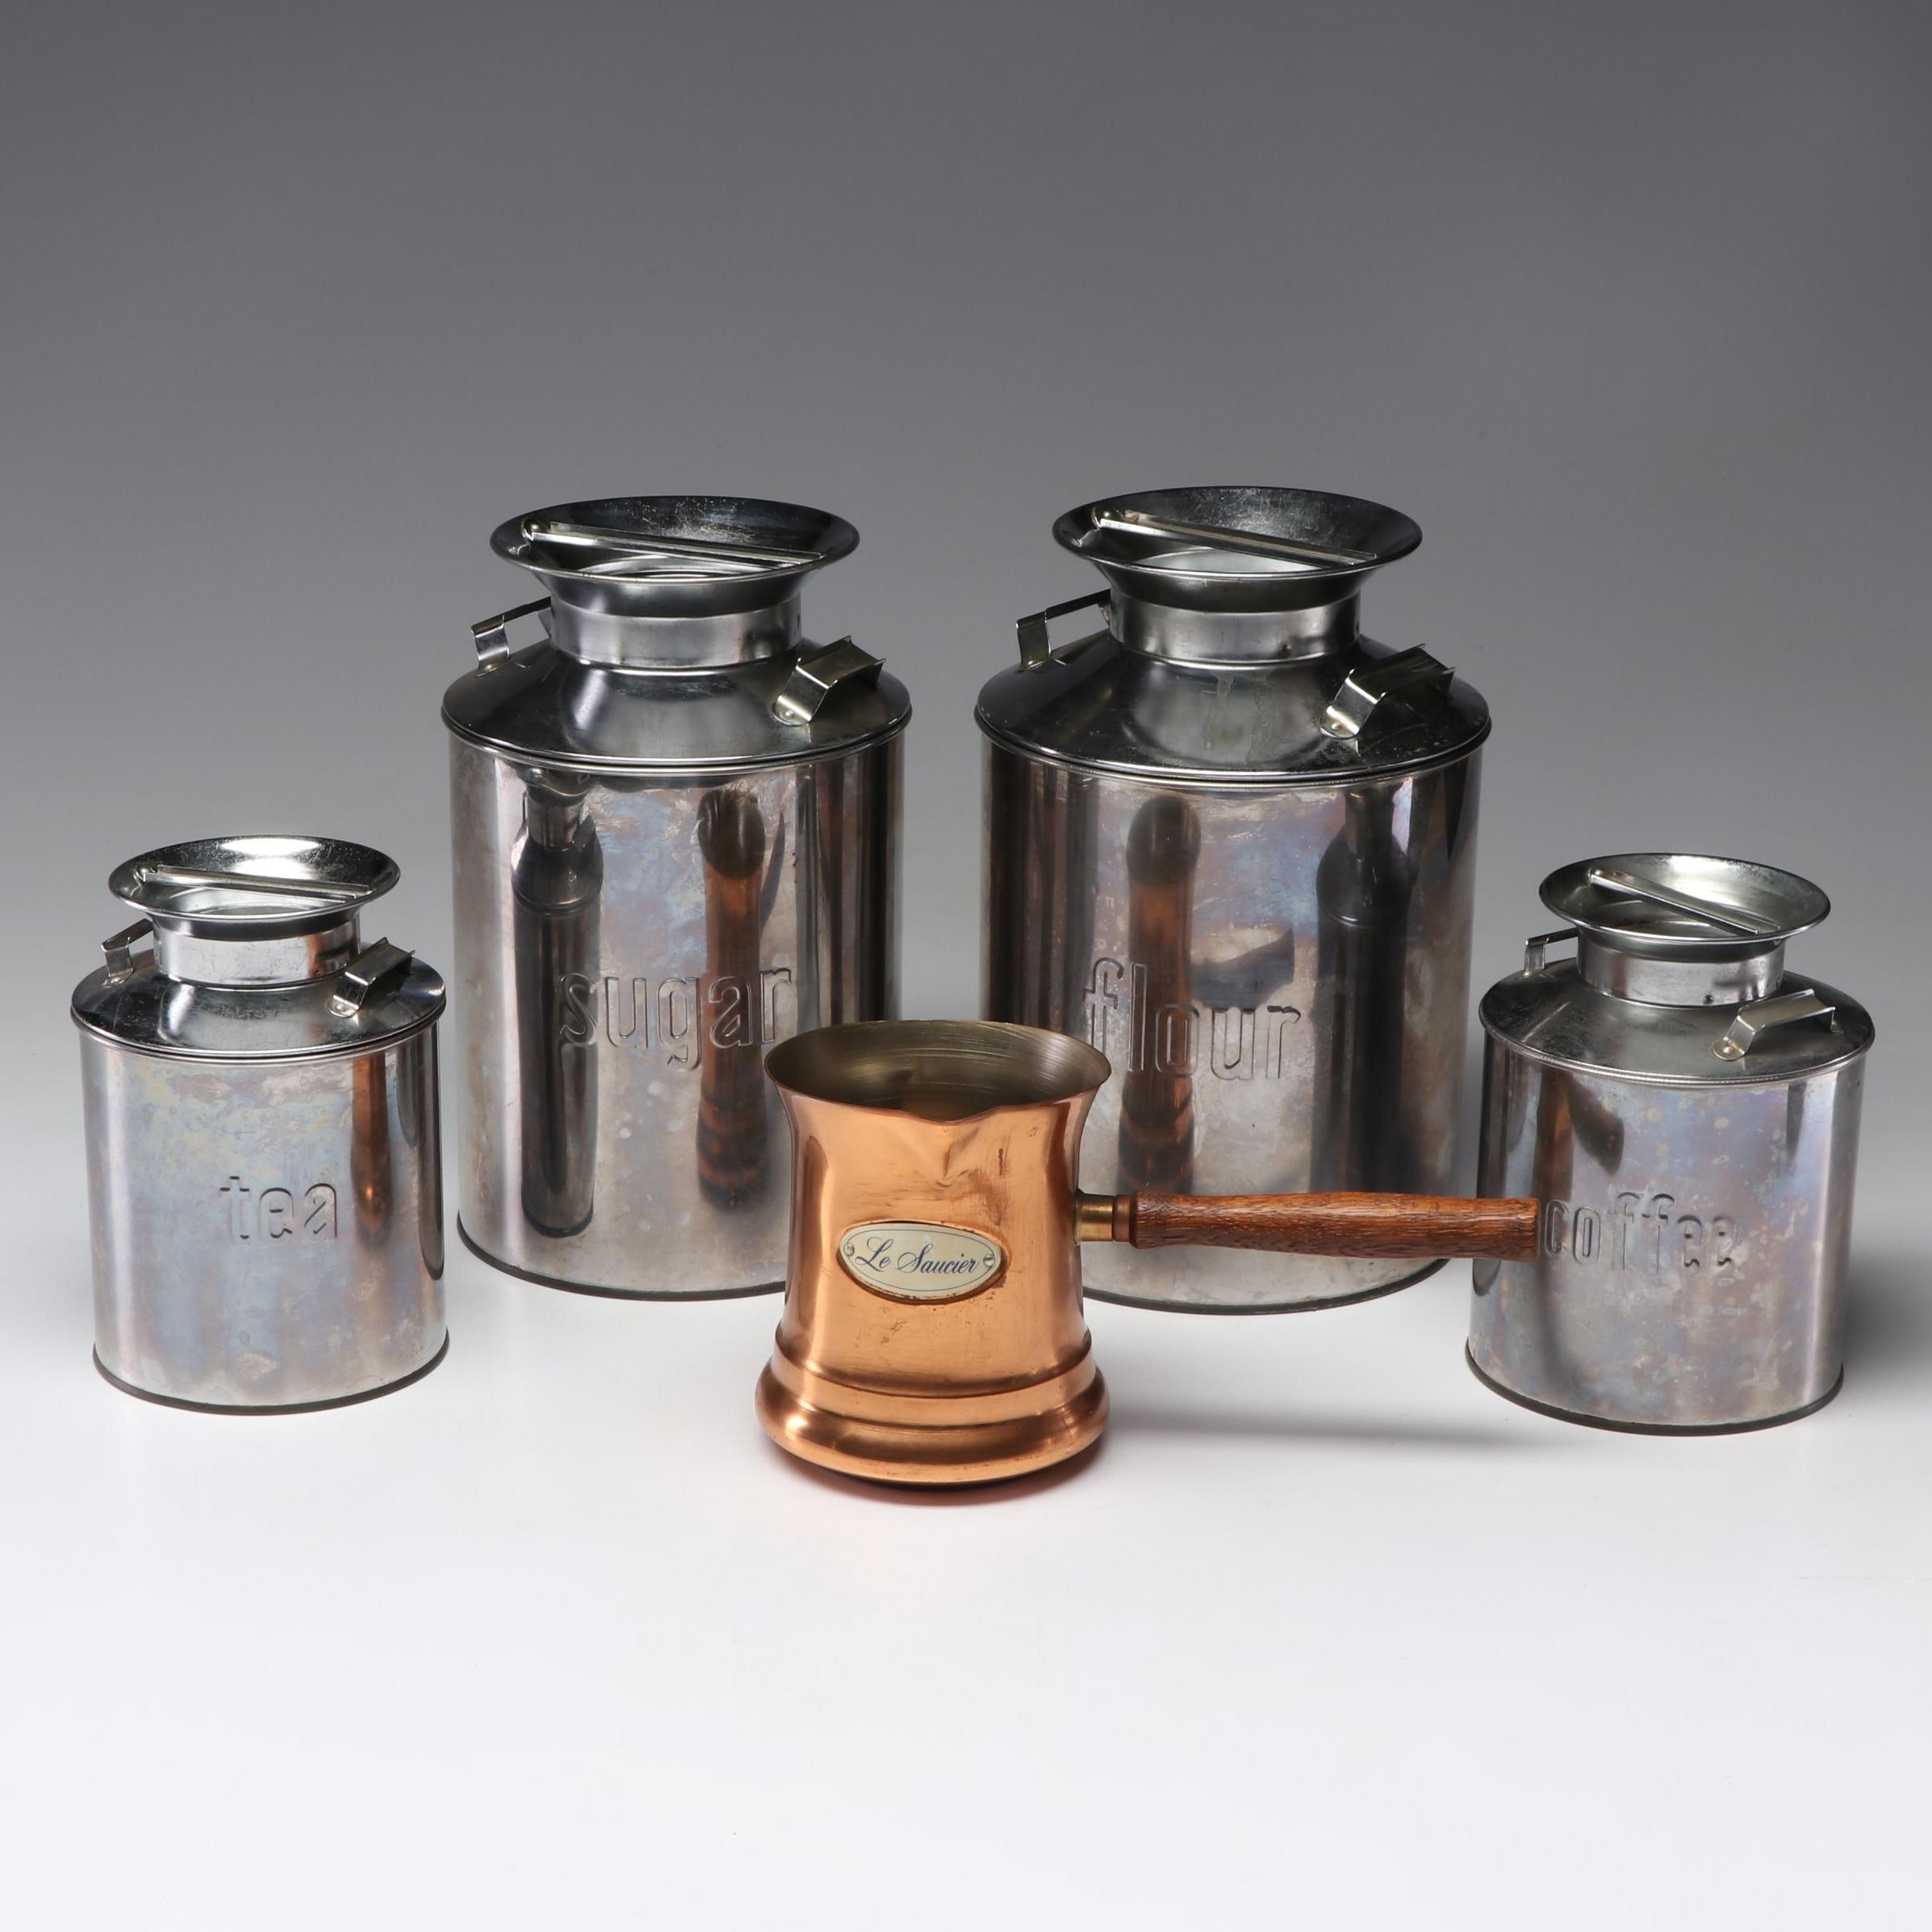 Le Saucier Copper Milk Warmer with Plated Steel Food Canisters